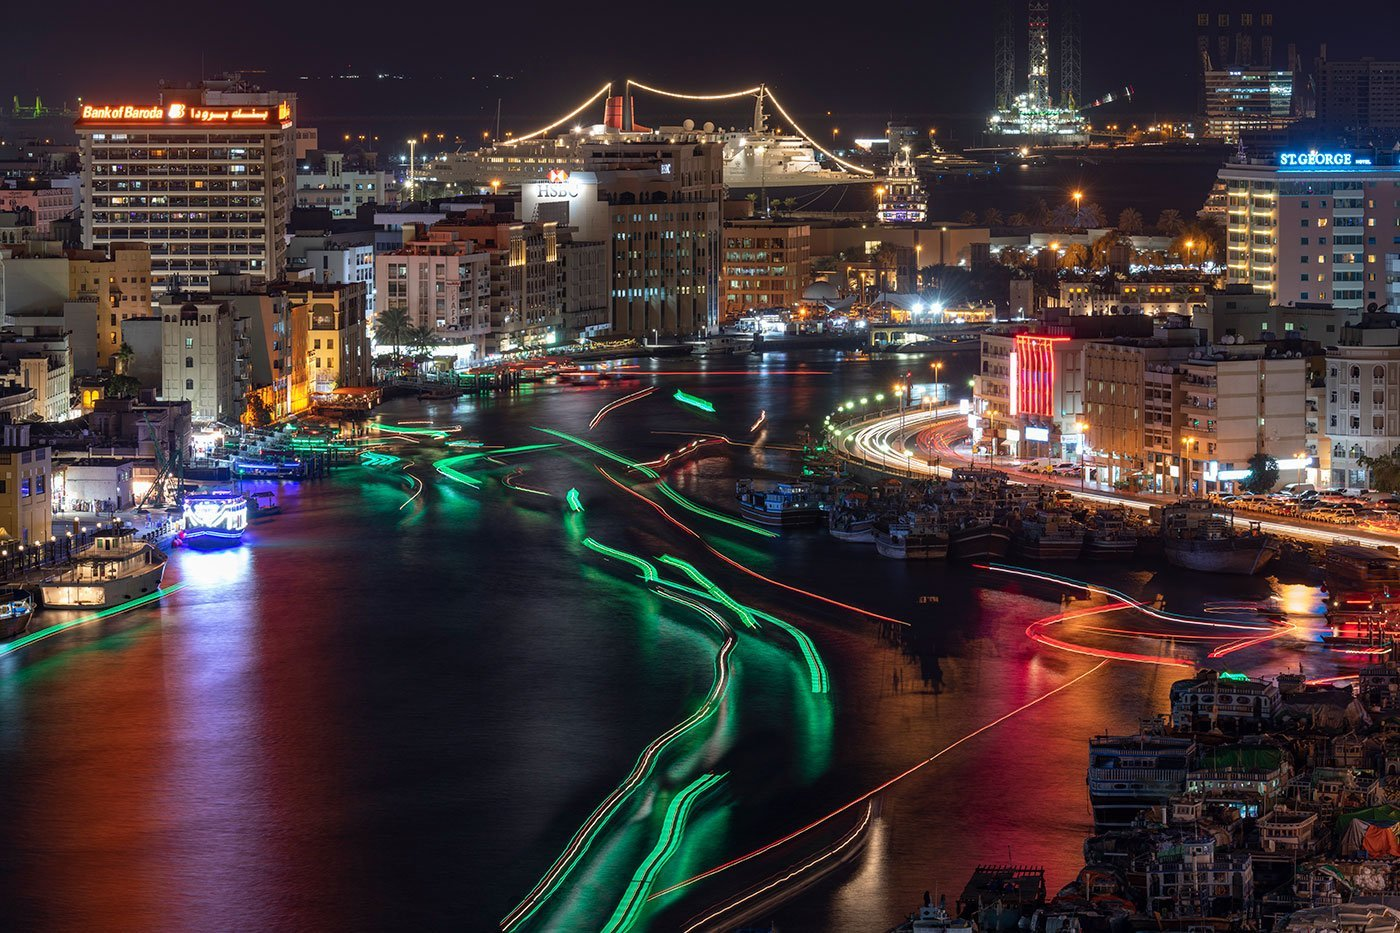 Light trails of boats moving up and down the Dubai creek with the QE2 at the background